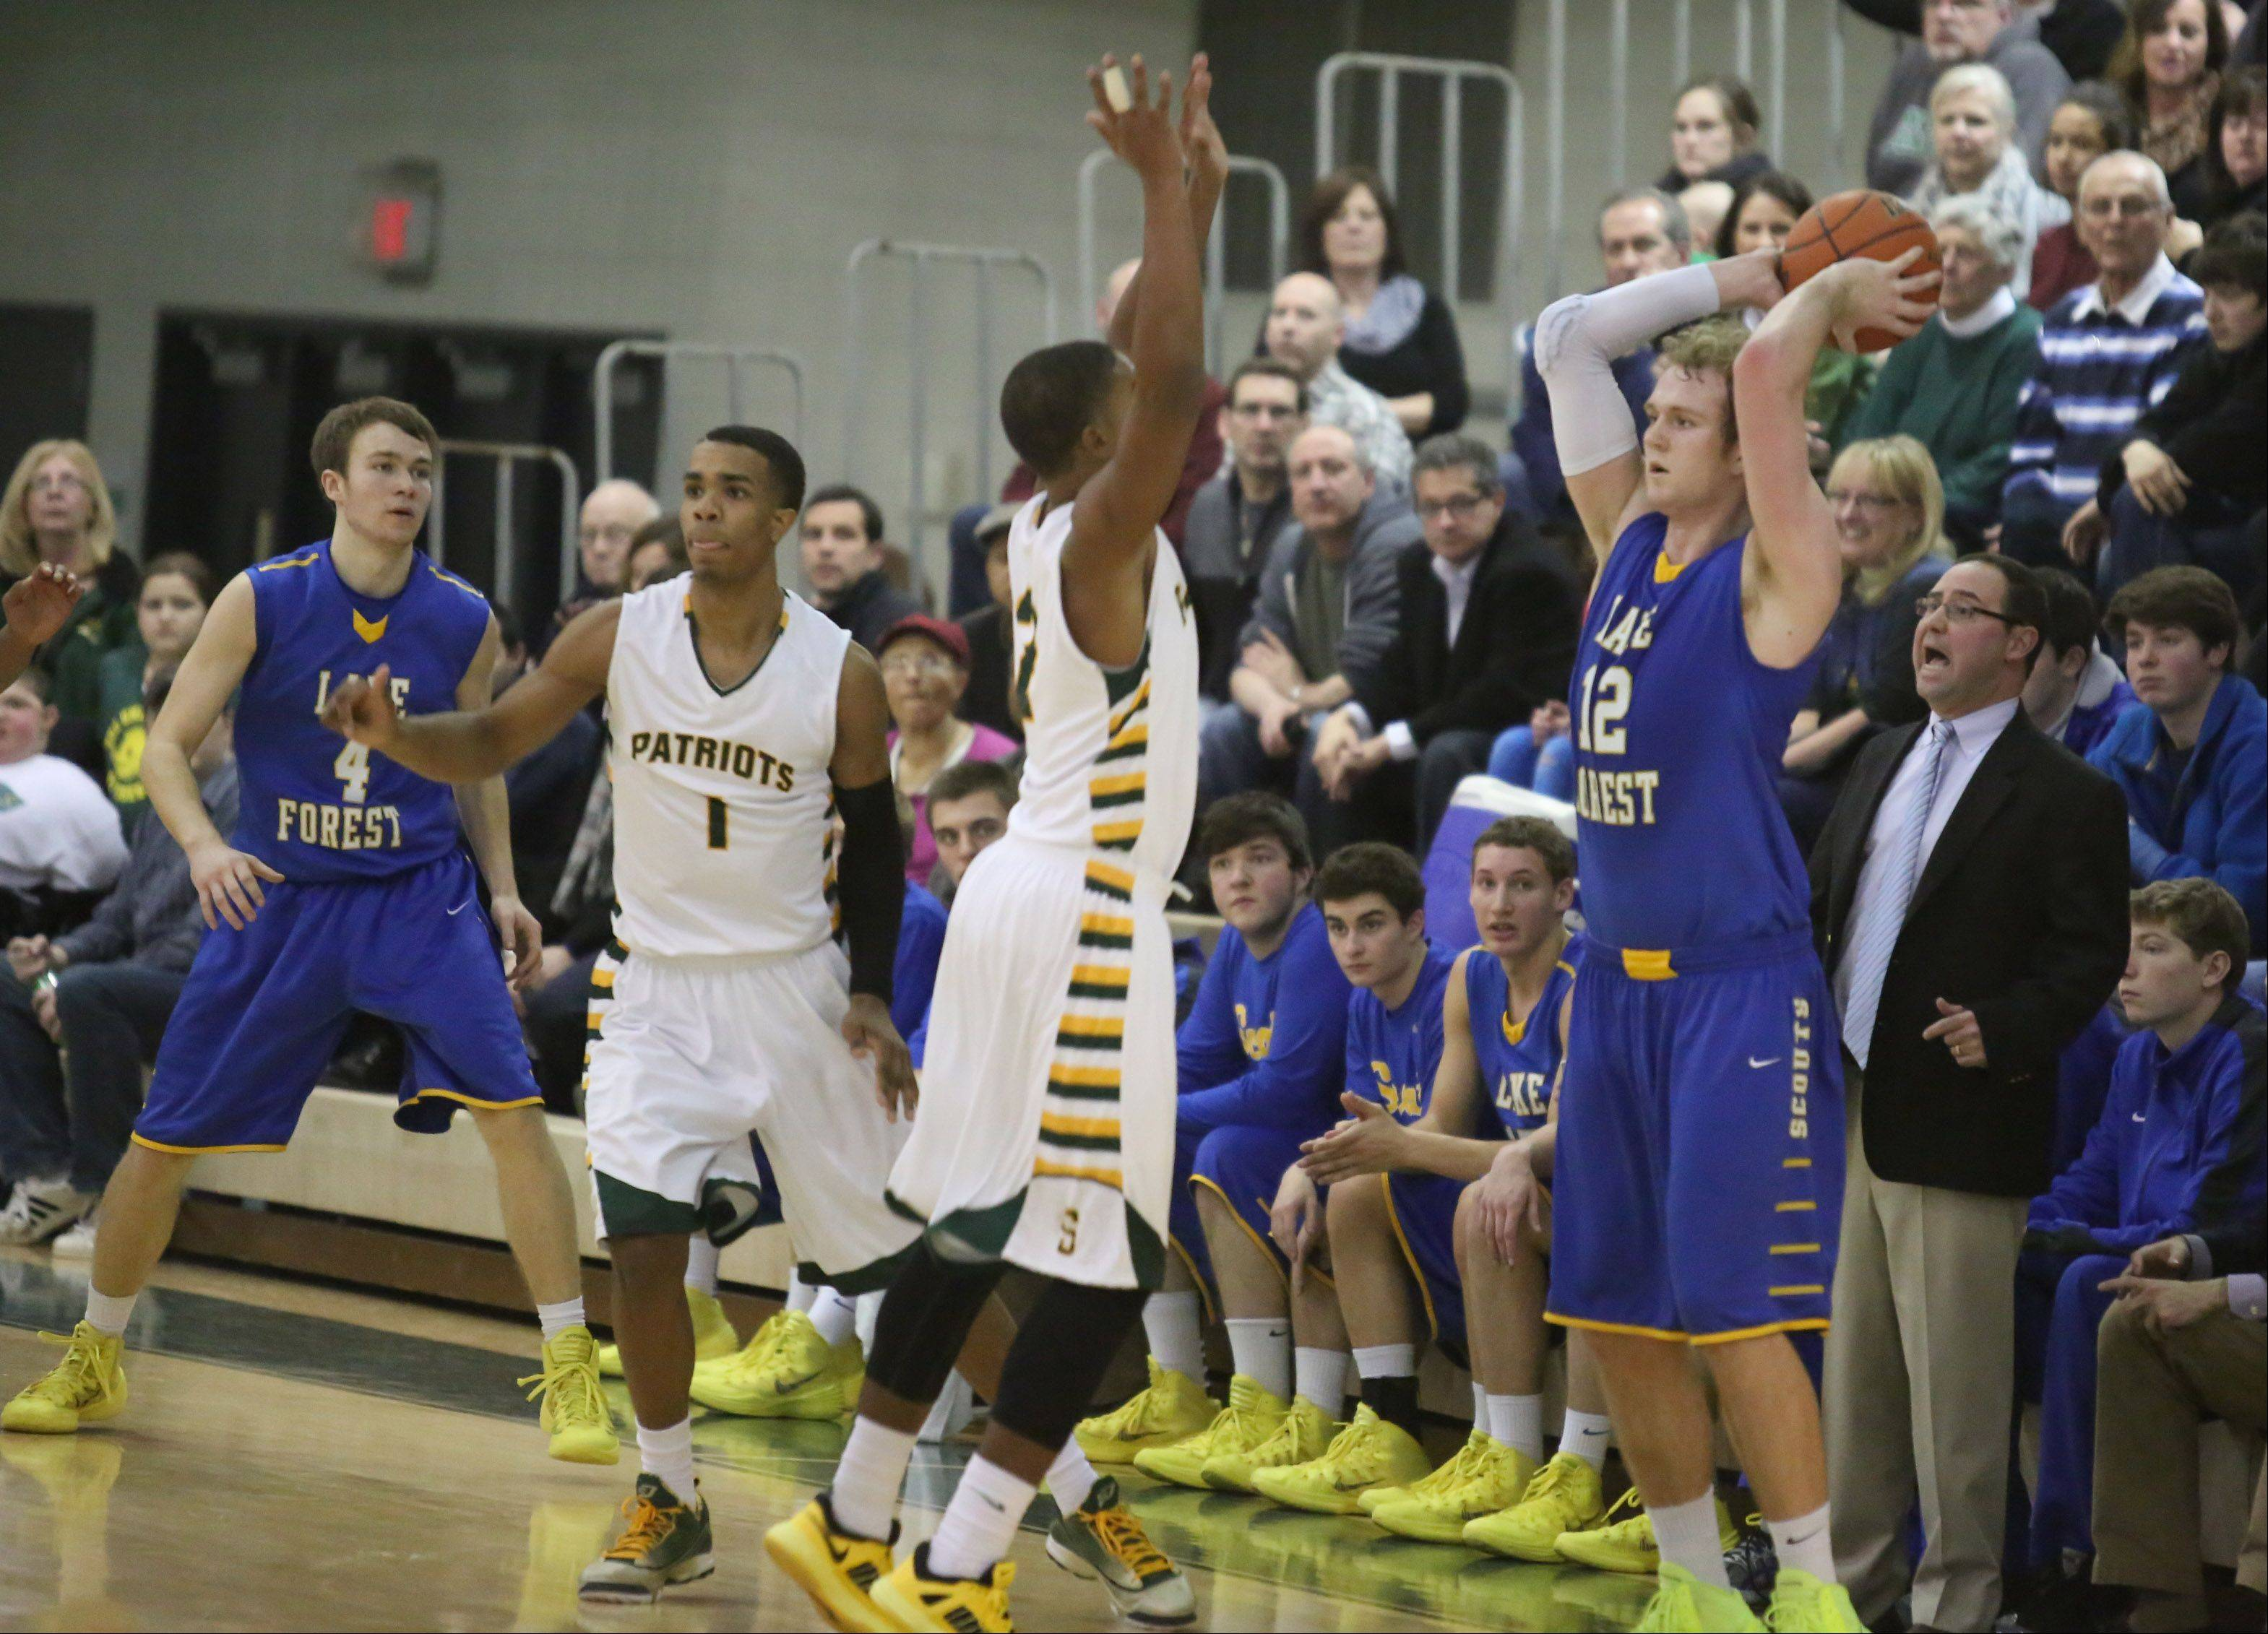 Images: Stevenson vs. Lake Forest boys basketball